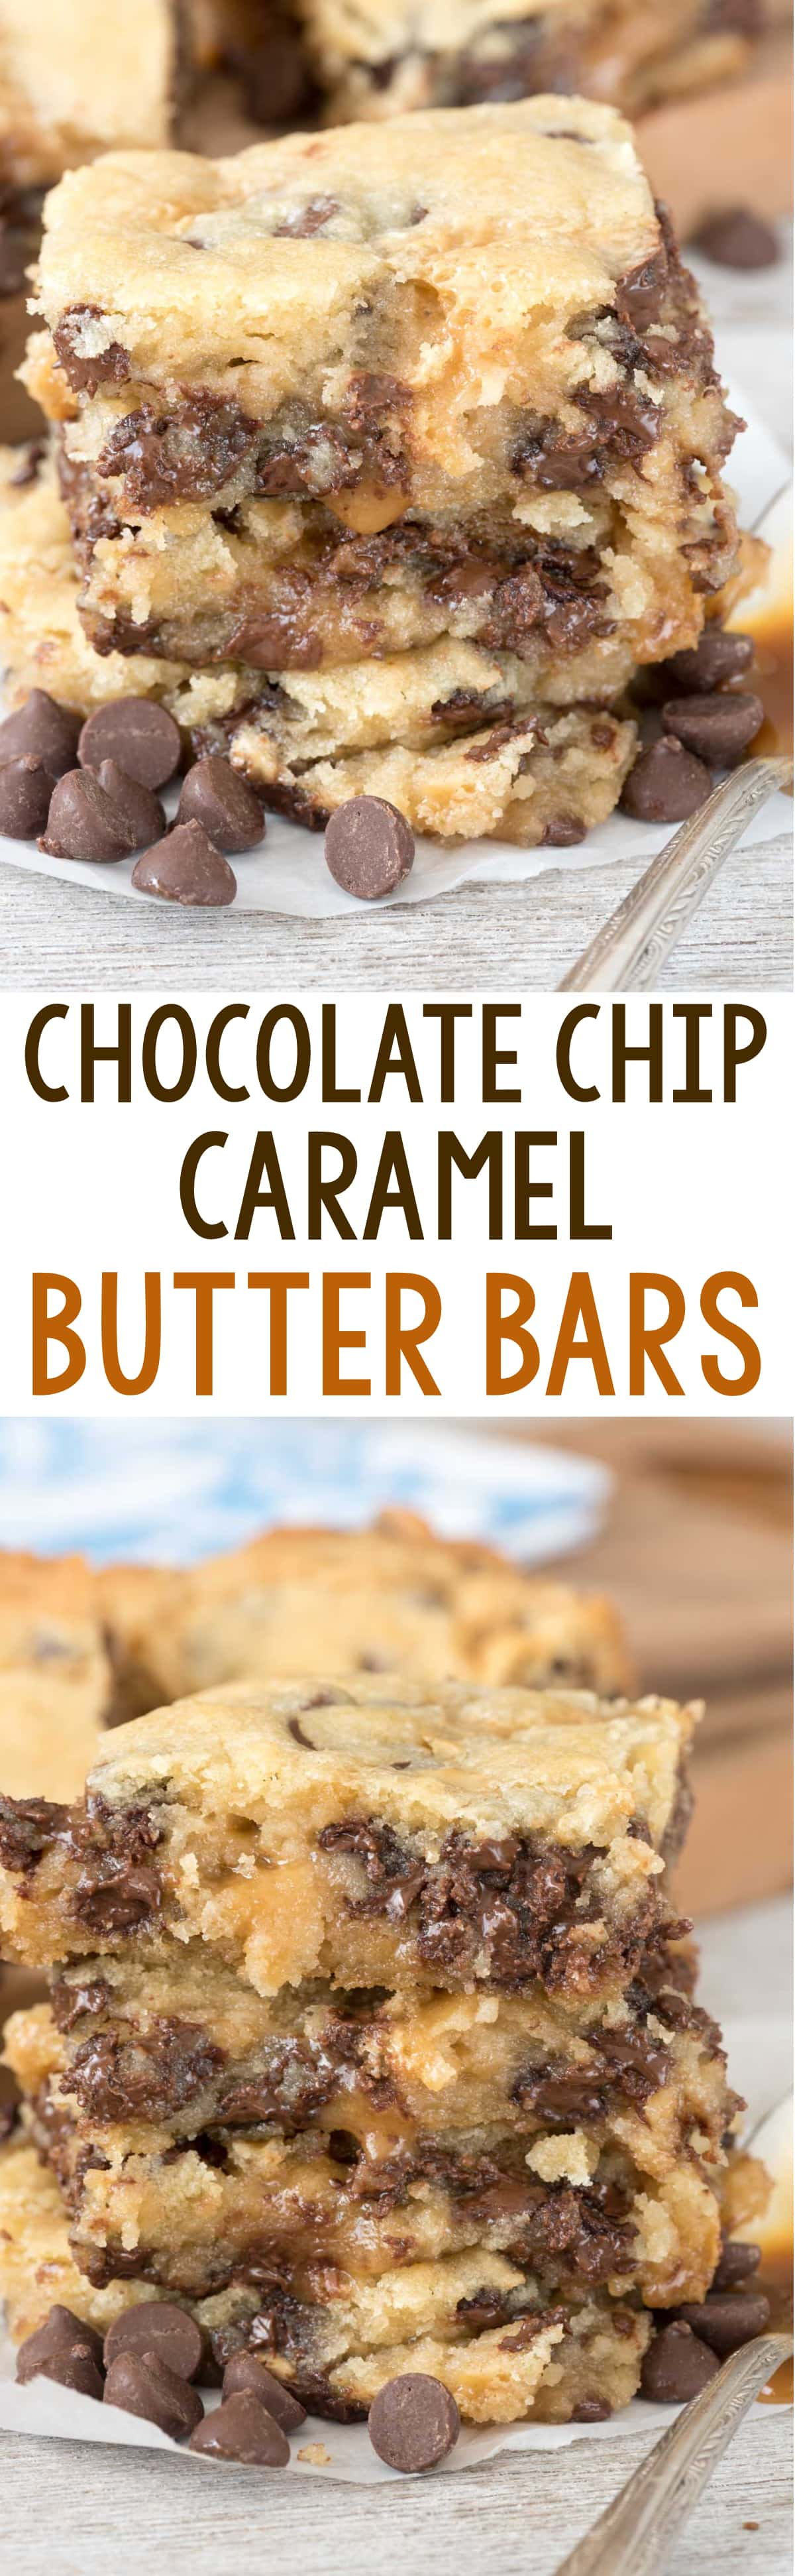 ... bars filled with chocolate chips and sandwiched with gooey caramel